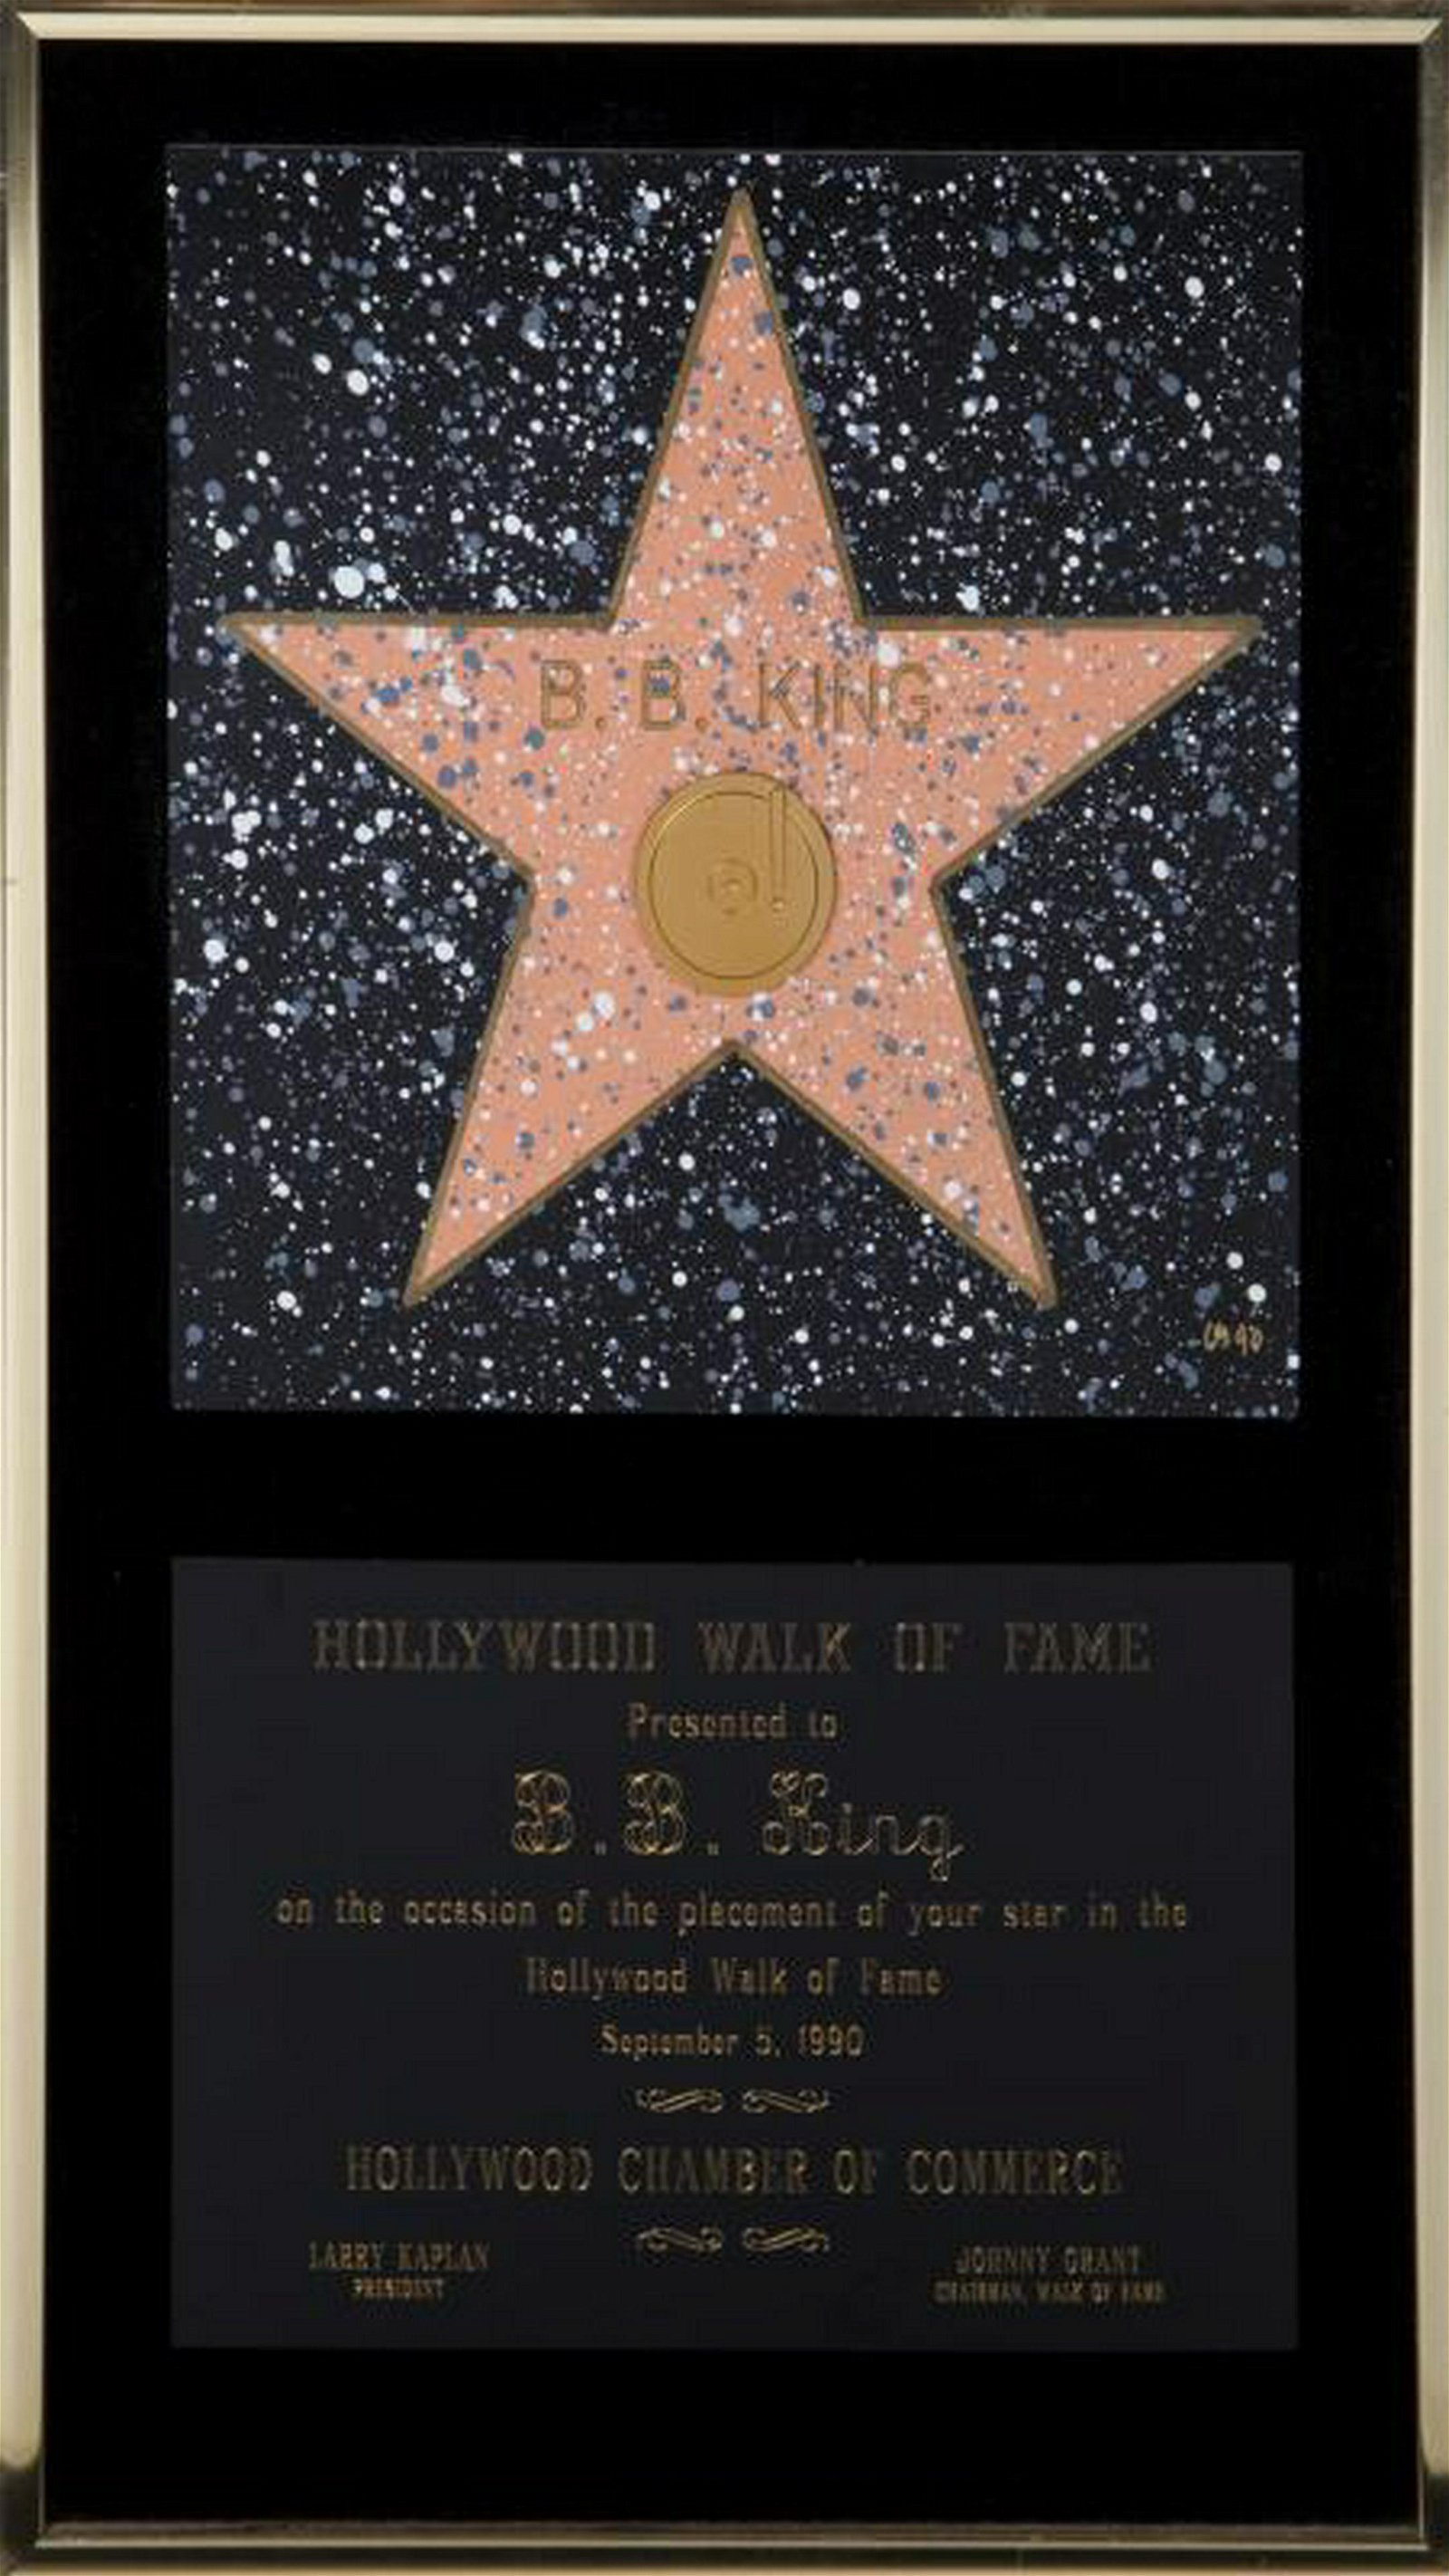 B.B. KING HOLLYWOOD WALK OF FAME PLAQUE